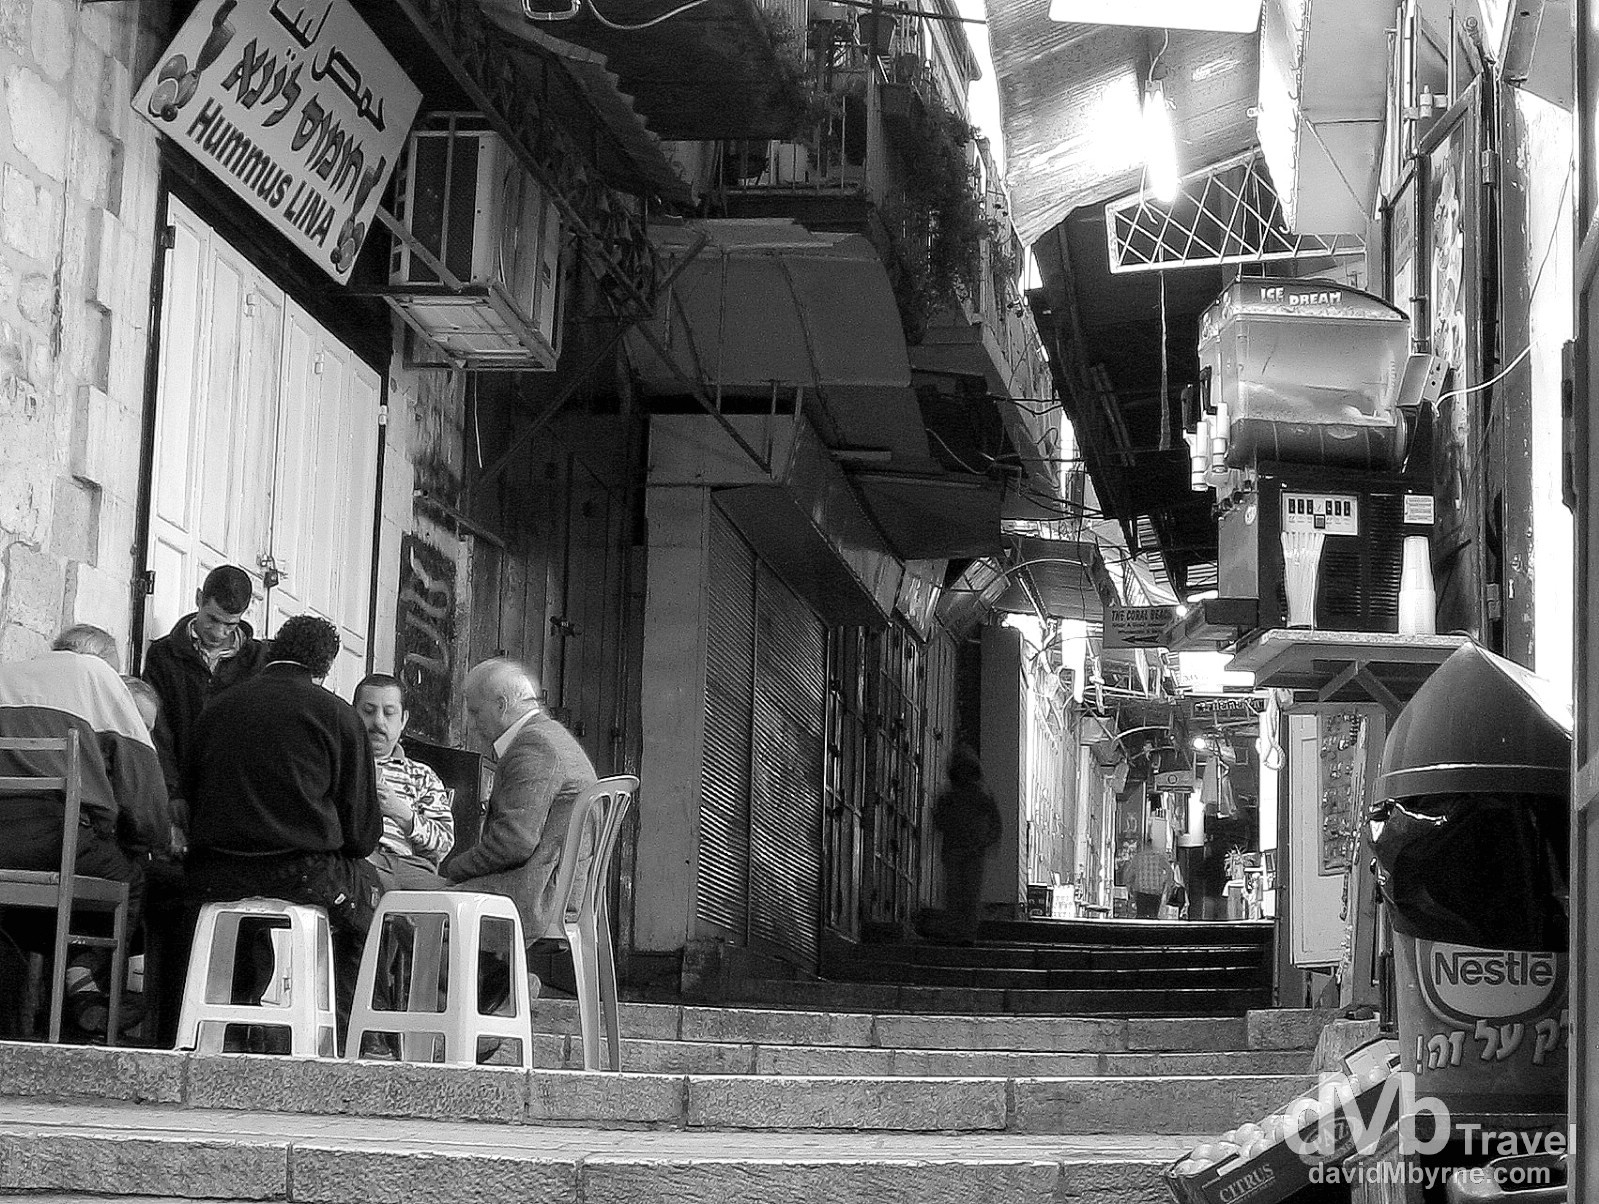 Playing cards in the lanes of the Old City of Jerusalem, Israel. May 2, 2008.